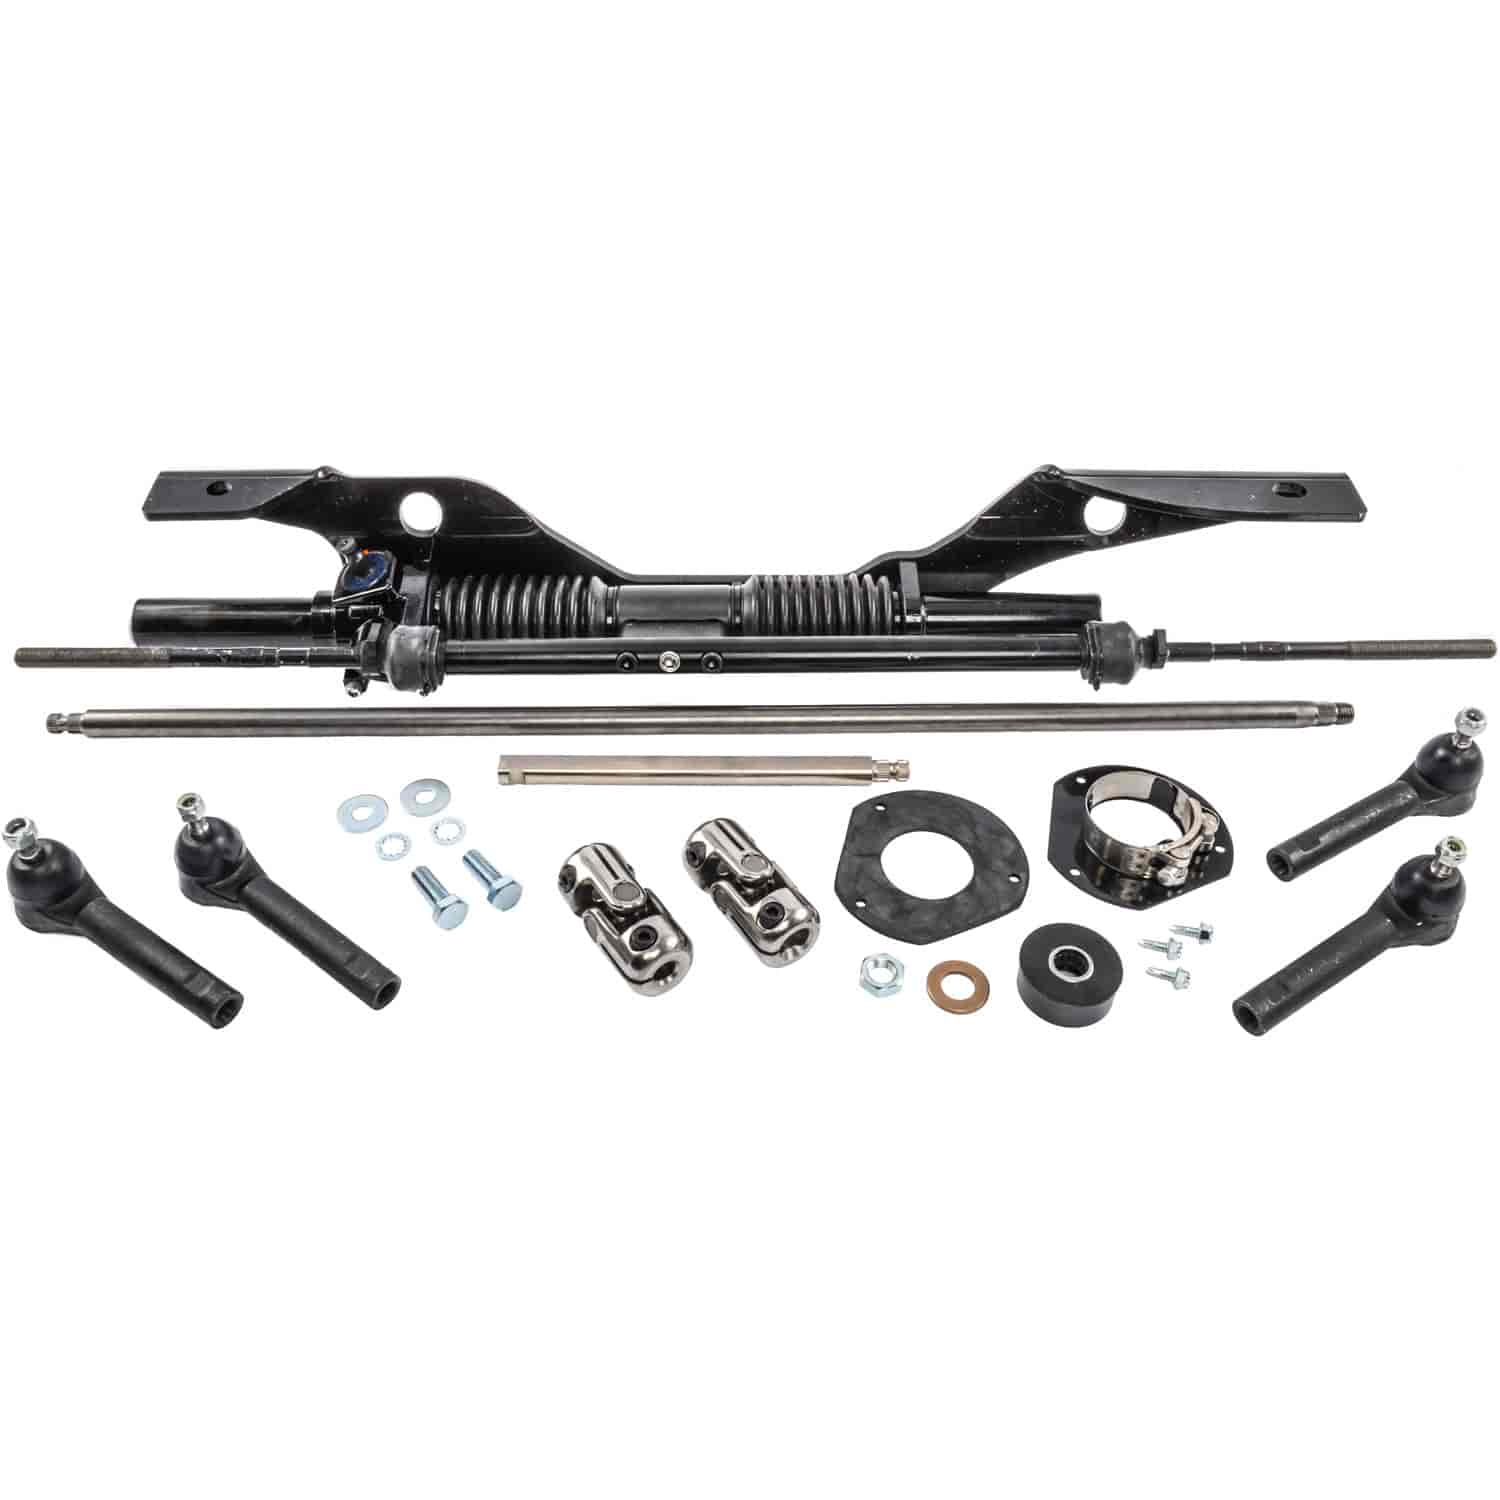 Unisteer 8001110-01: Manual Rack and Pinion Kit 1965-1966